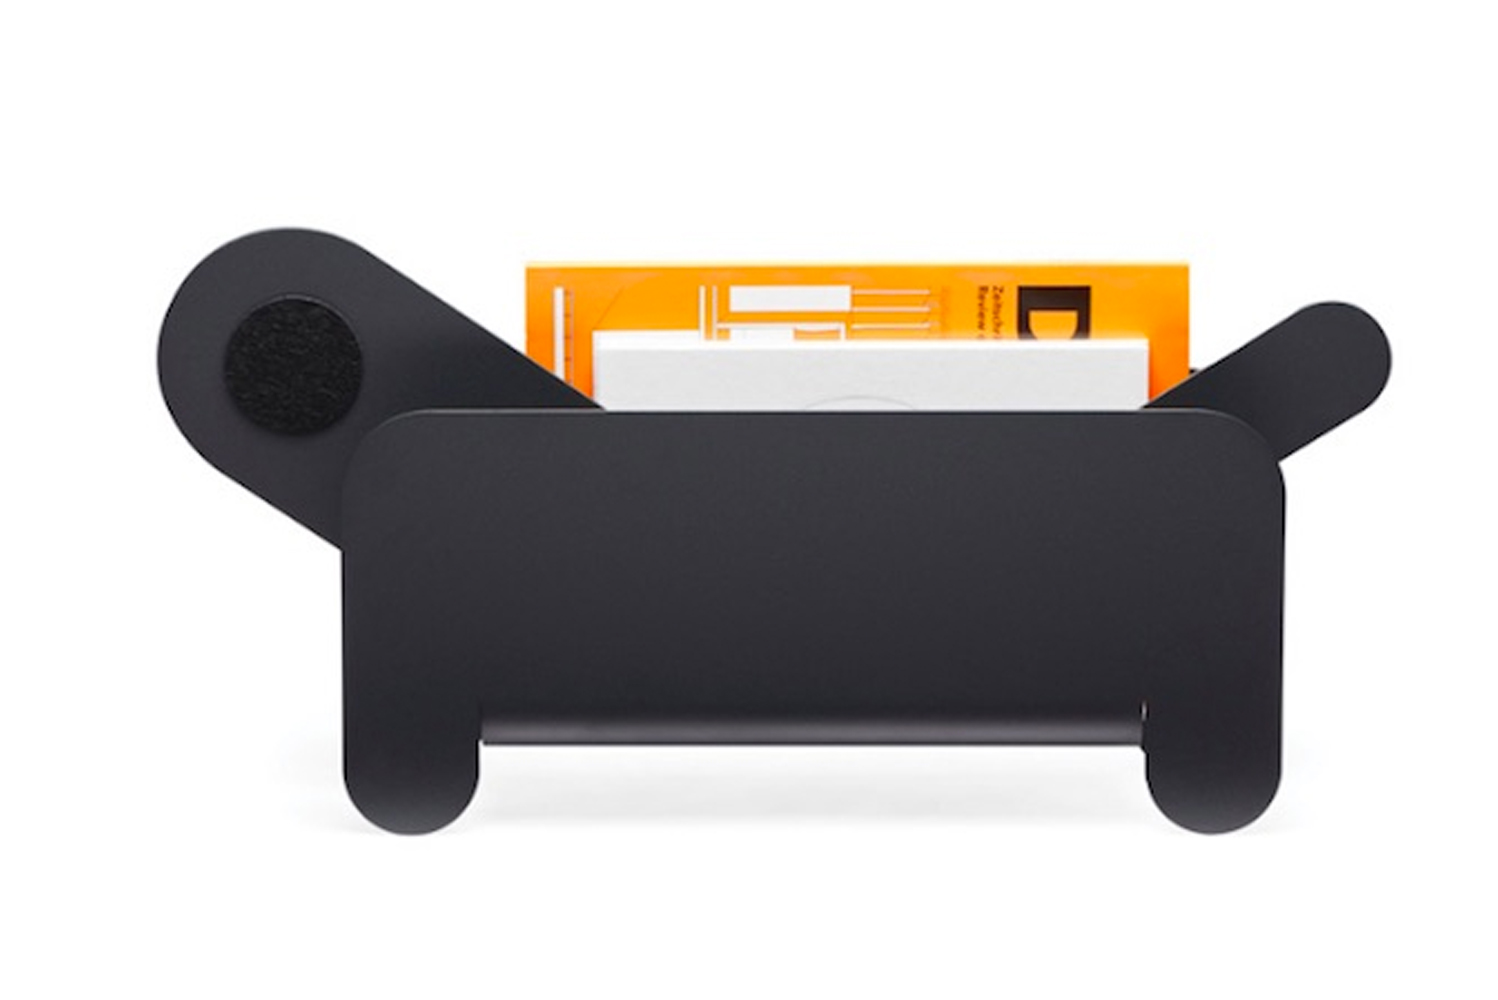 Netherlands-based international design agency Frederick Roije launched Paper Pet, a magazine rack inspired by pets.